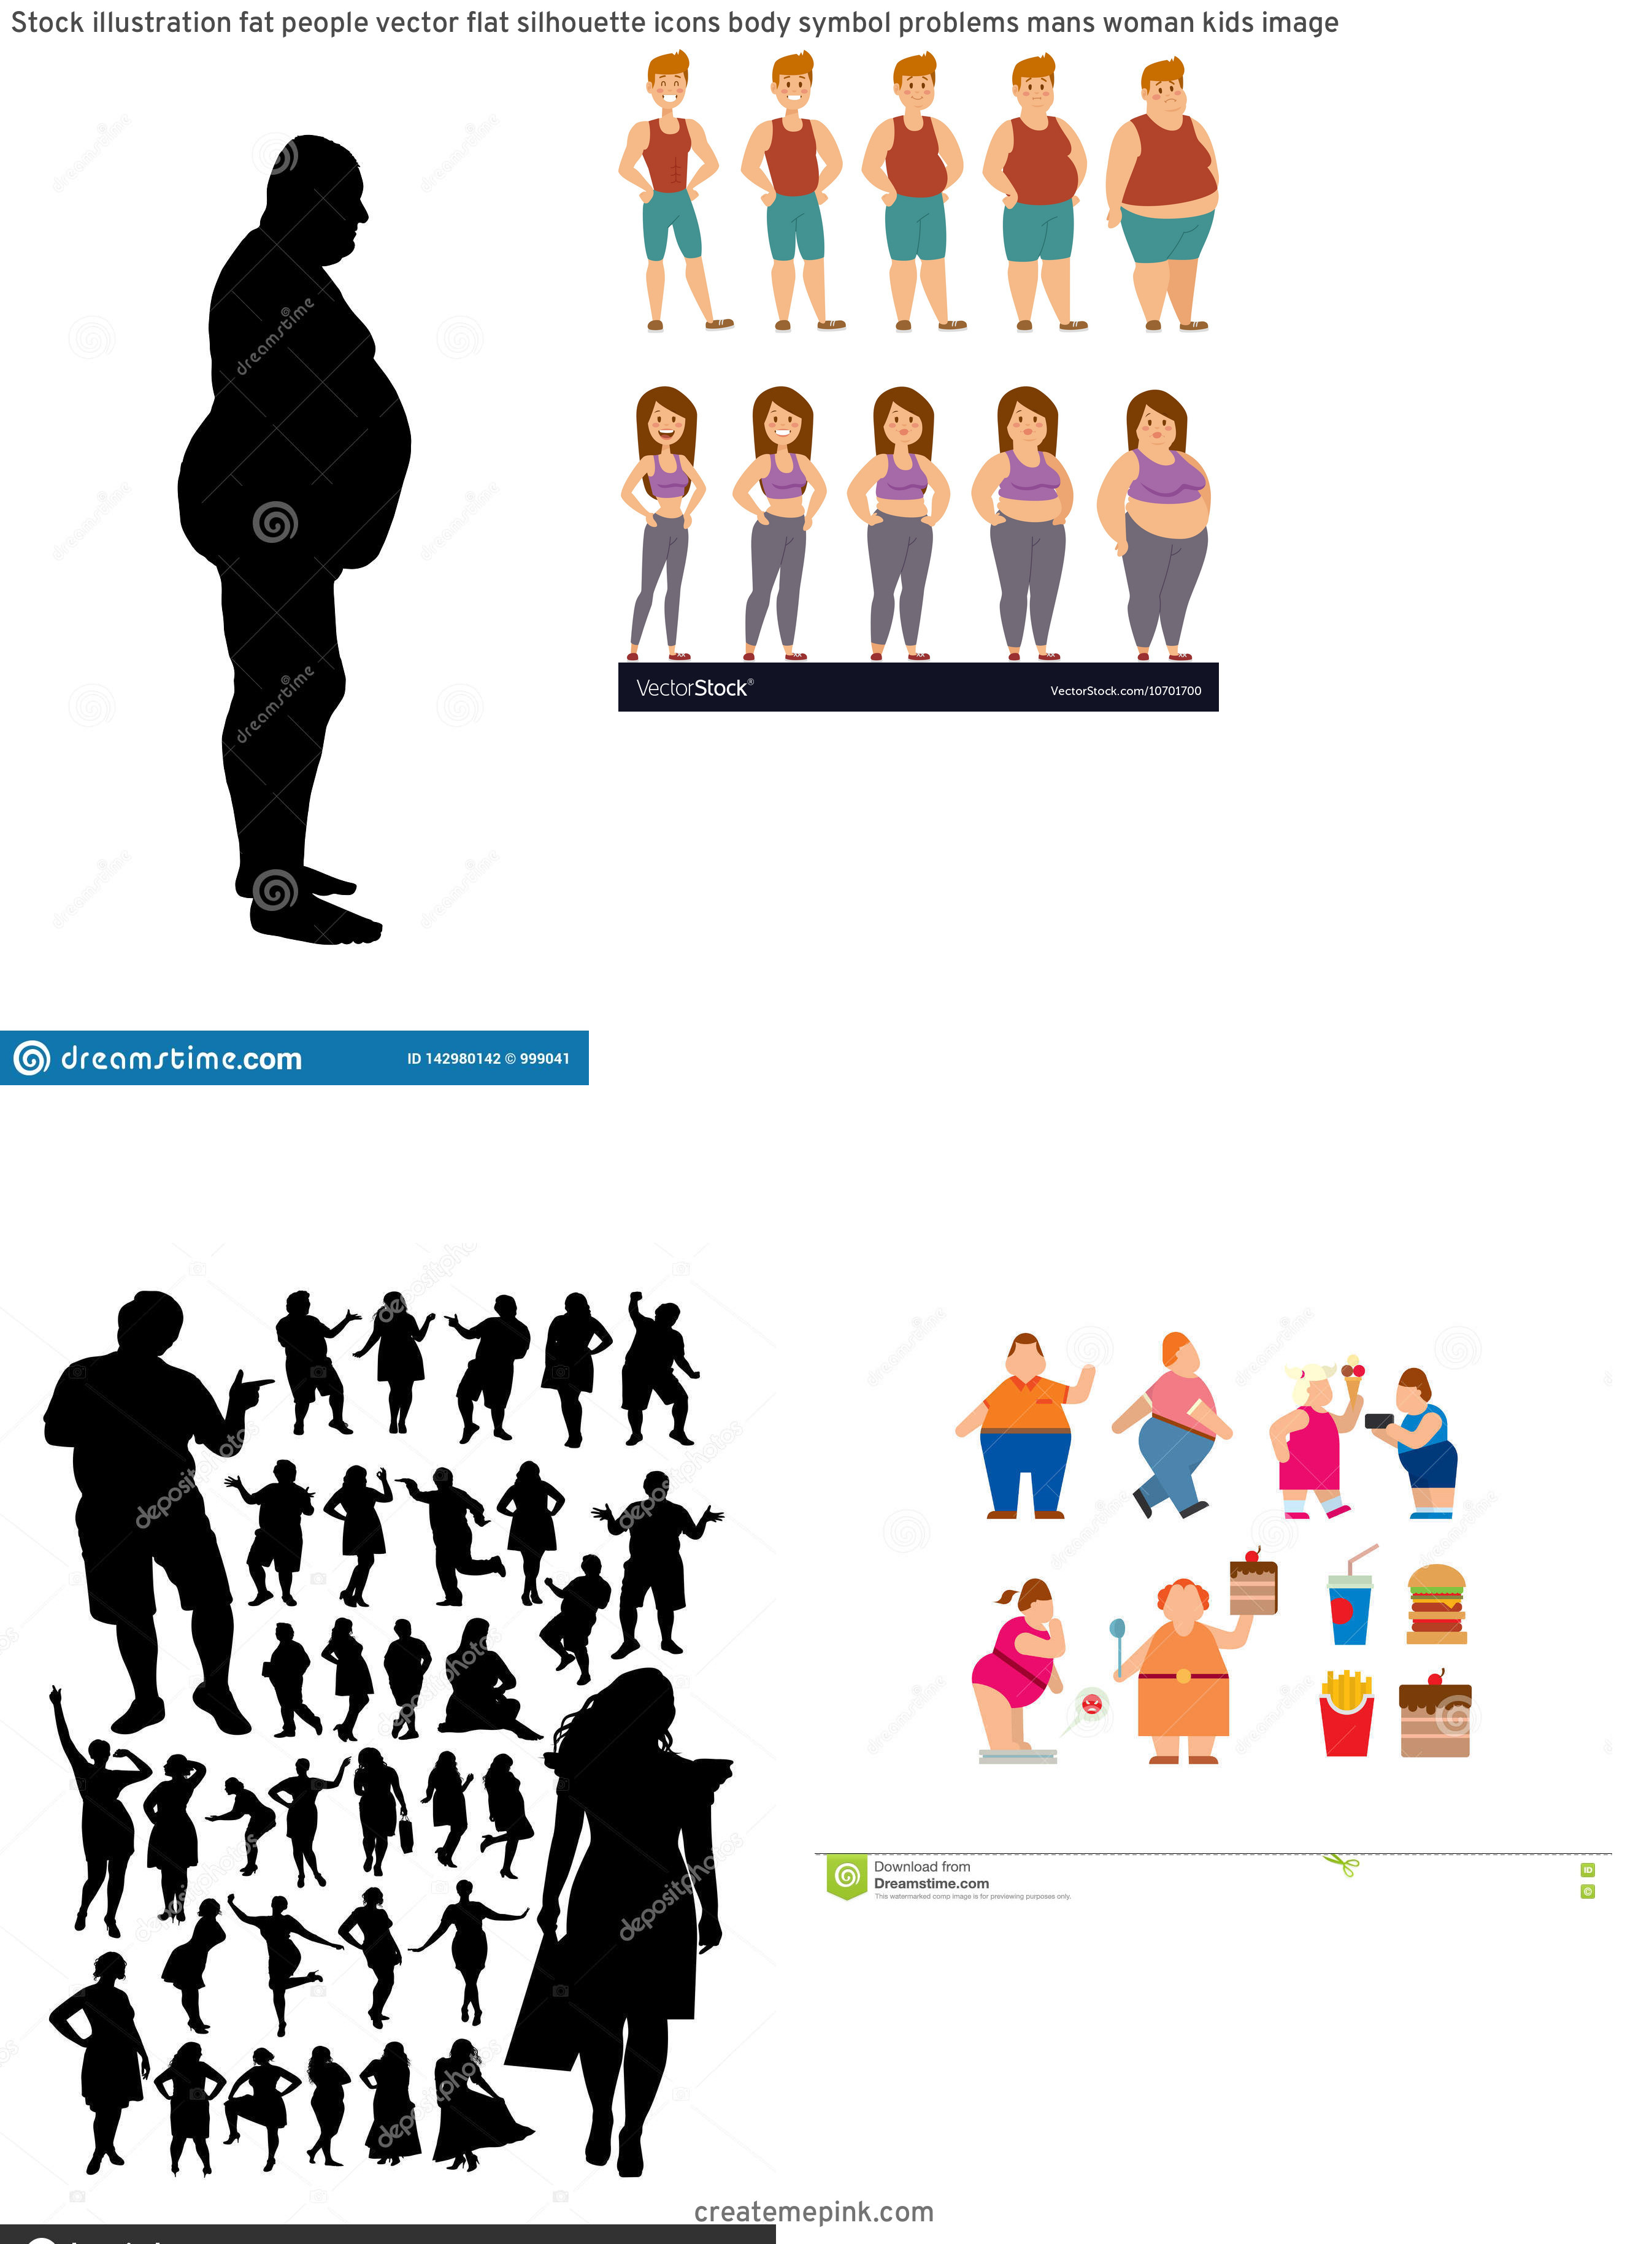 People Silhouette Vector Illustration Of Fat: Stock Illustration Fat People Vector Flat Silhouette Icons Body Symbol Problems Mans Woman Kids Image